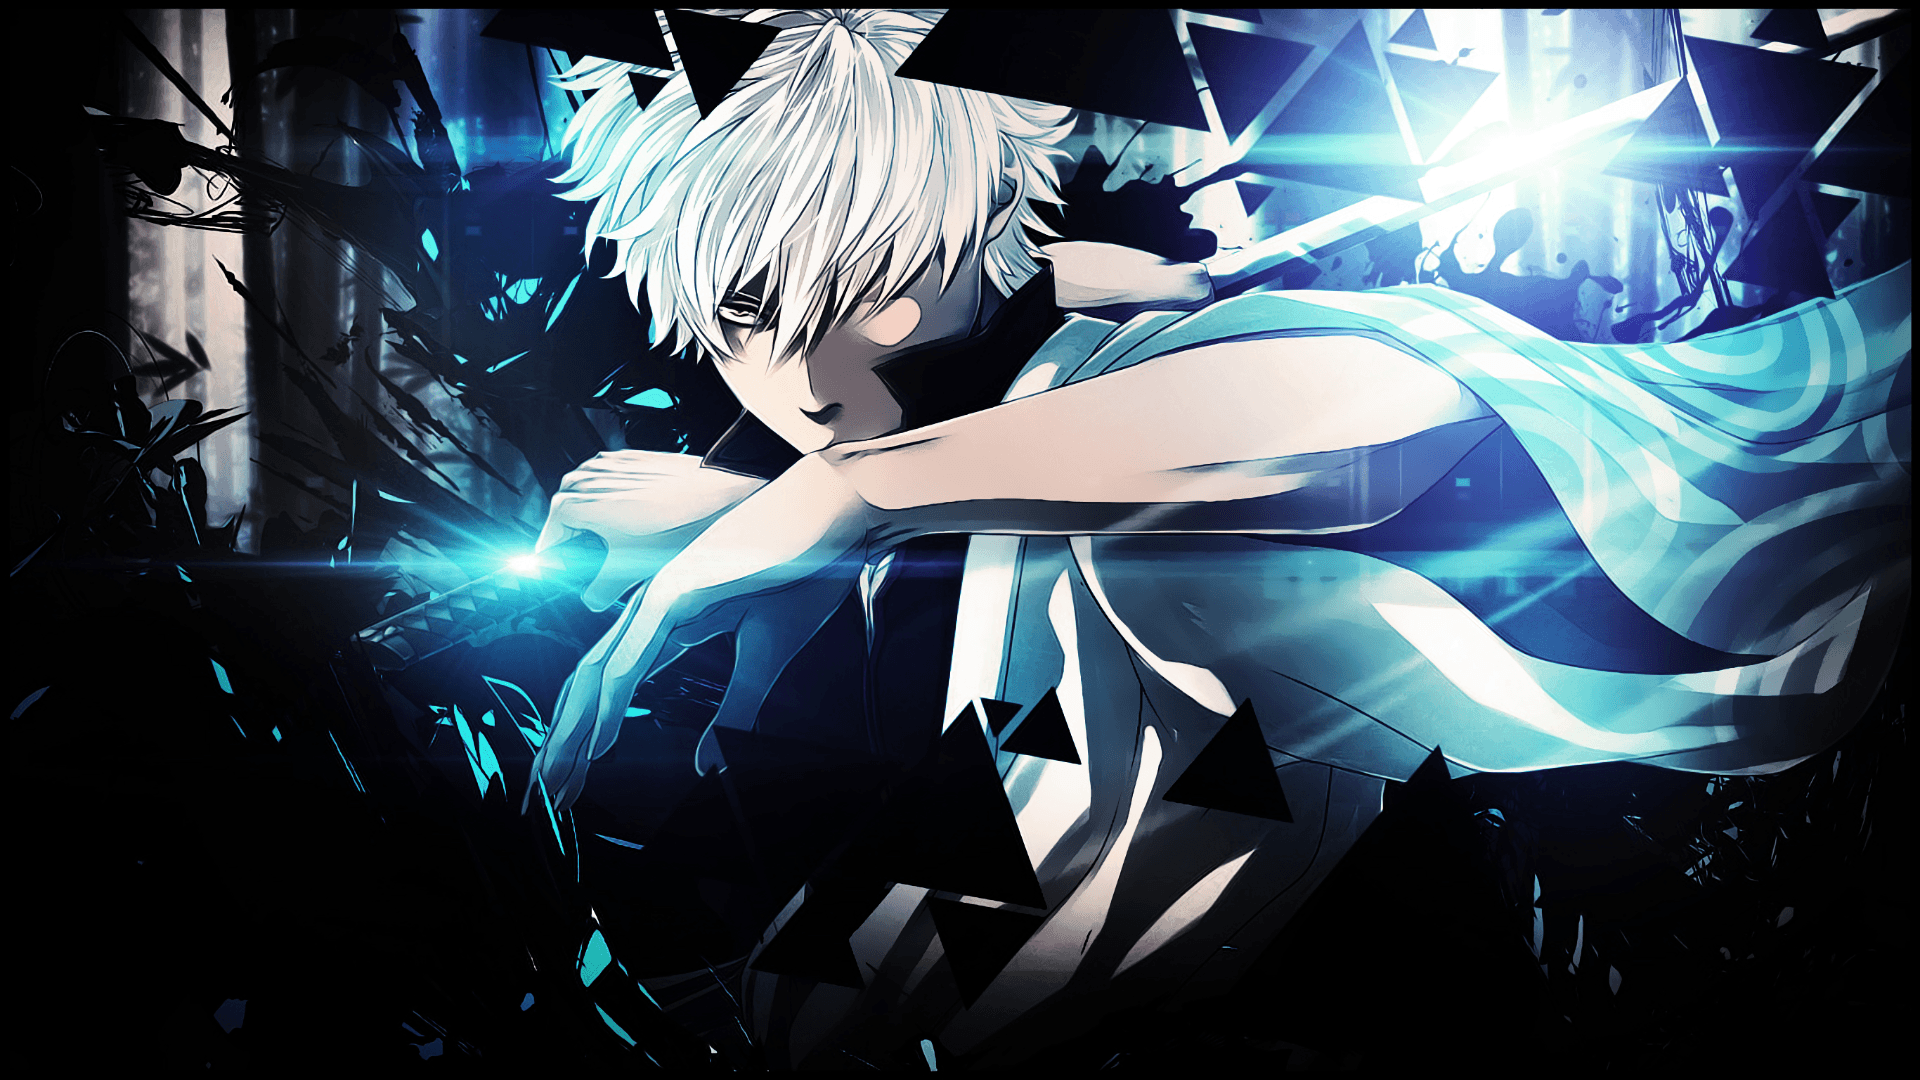 Gintama Wallpaper Phone Hd Checkout High Quality Gintama Wallpapers For Android Desktop Mac Laptop Smart Gintama Wallpaper Hd Anime Wallpapers Anime Wallpaper